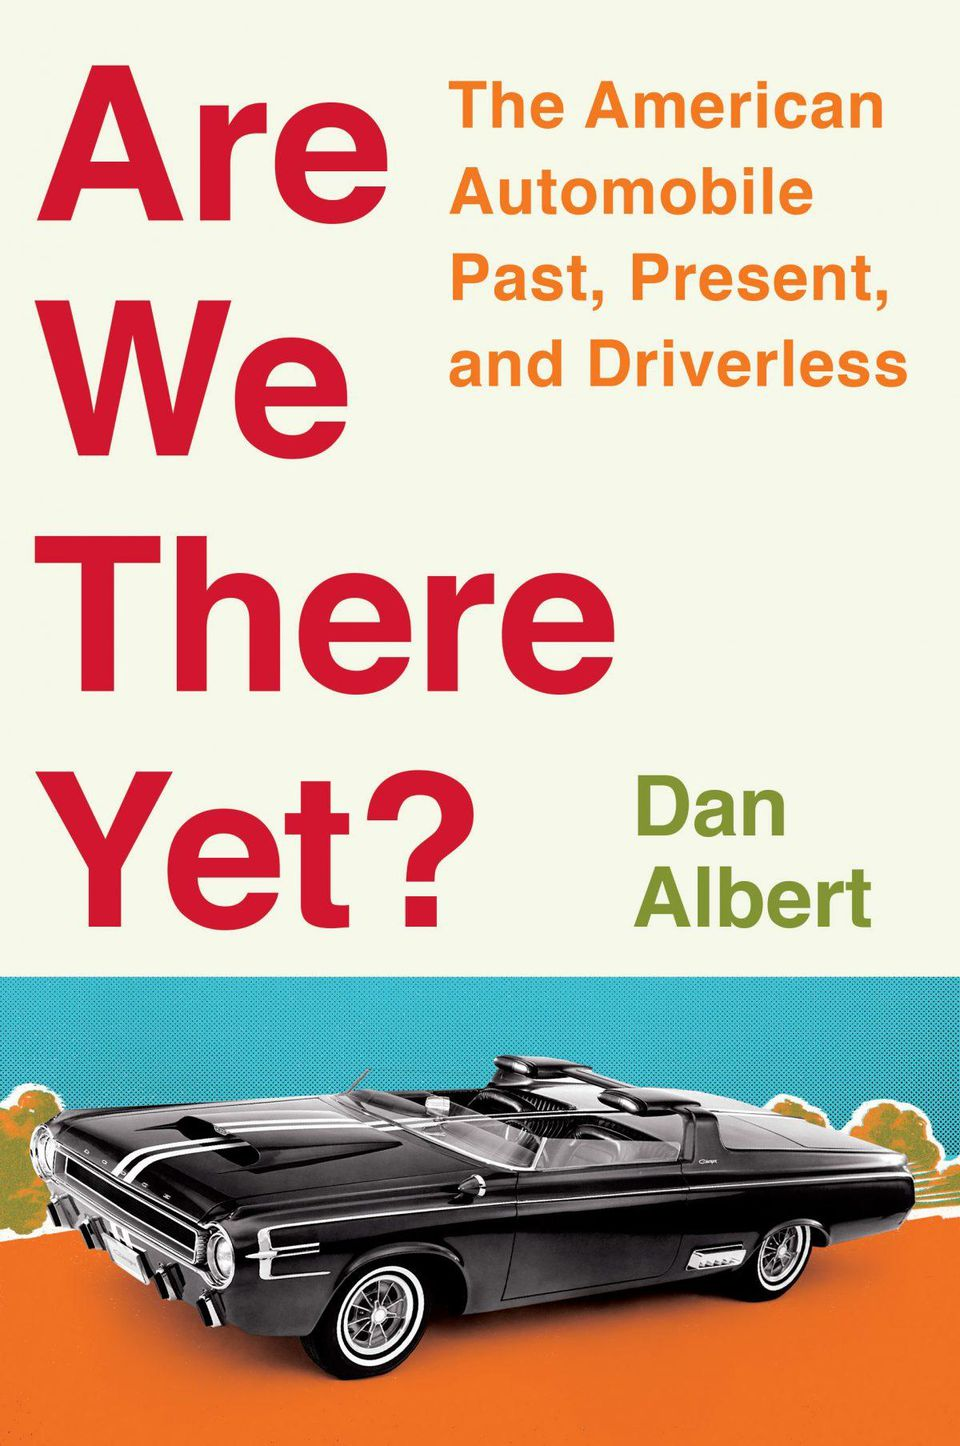 Book cover - Dan Albert